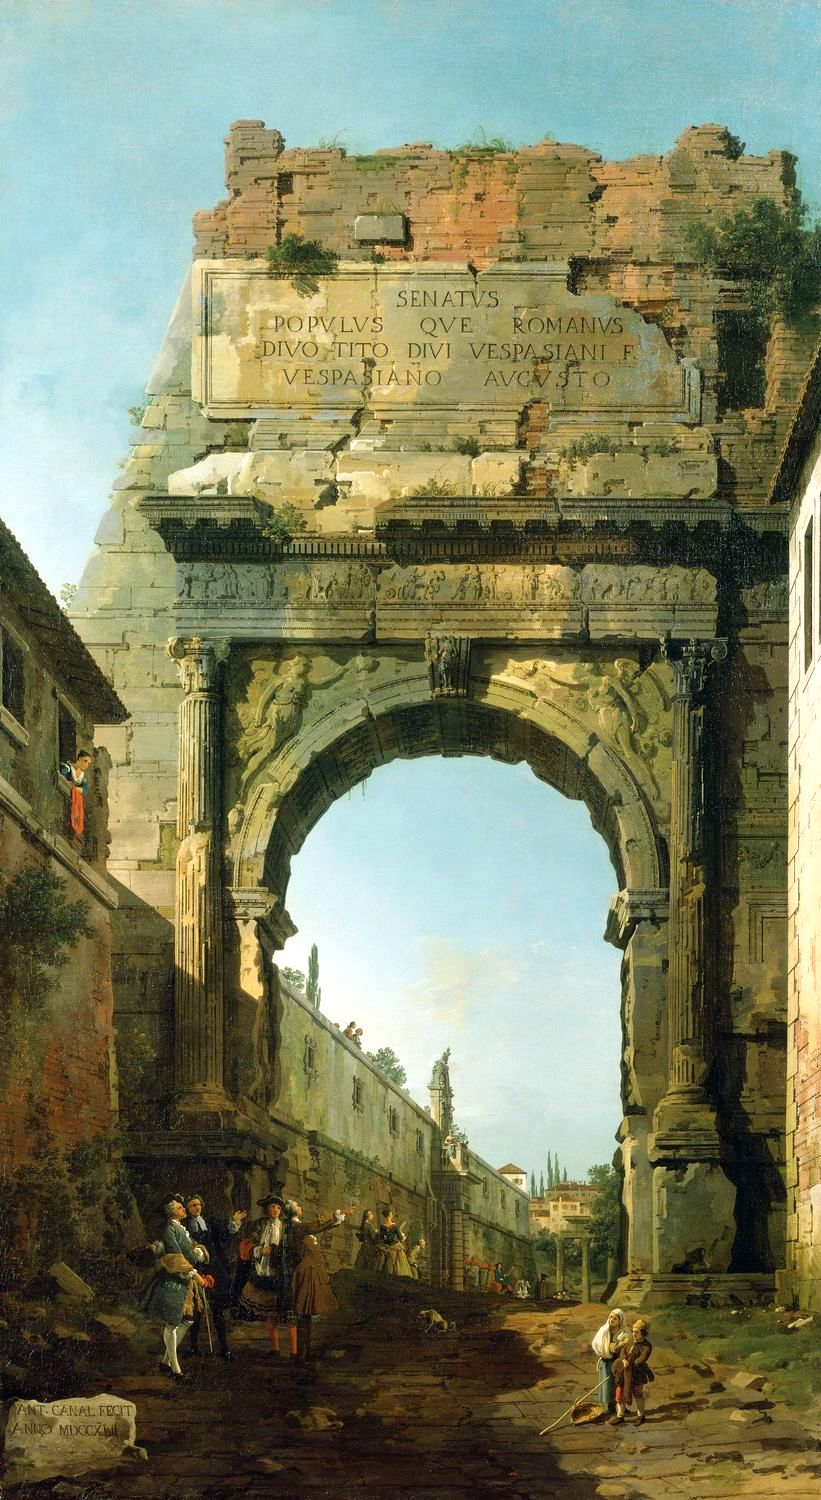 Canaletto – The Royal Collection RCIN 401002. Title: Rome: The Arch of Titus. Date: 1742. Materials: oil on canvas. Dimensions: 192.2 x 106.5 cm. Nr.: 401002. Source: https://www.royalcollection.org.uk/collection/search#/14/collection/401002/rome-the-arch-of-titus. I have changed the light, contrast and colors of the original photo.